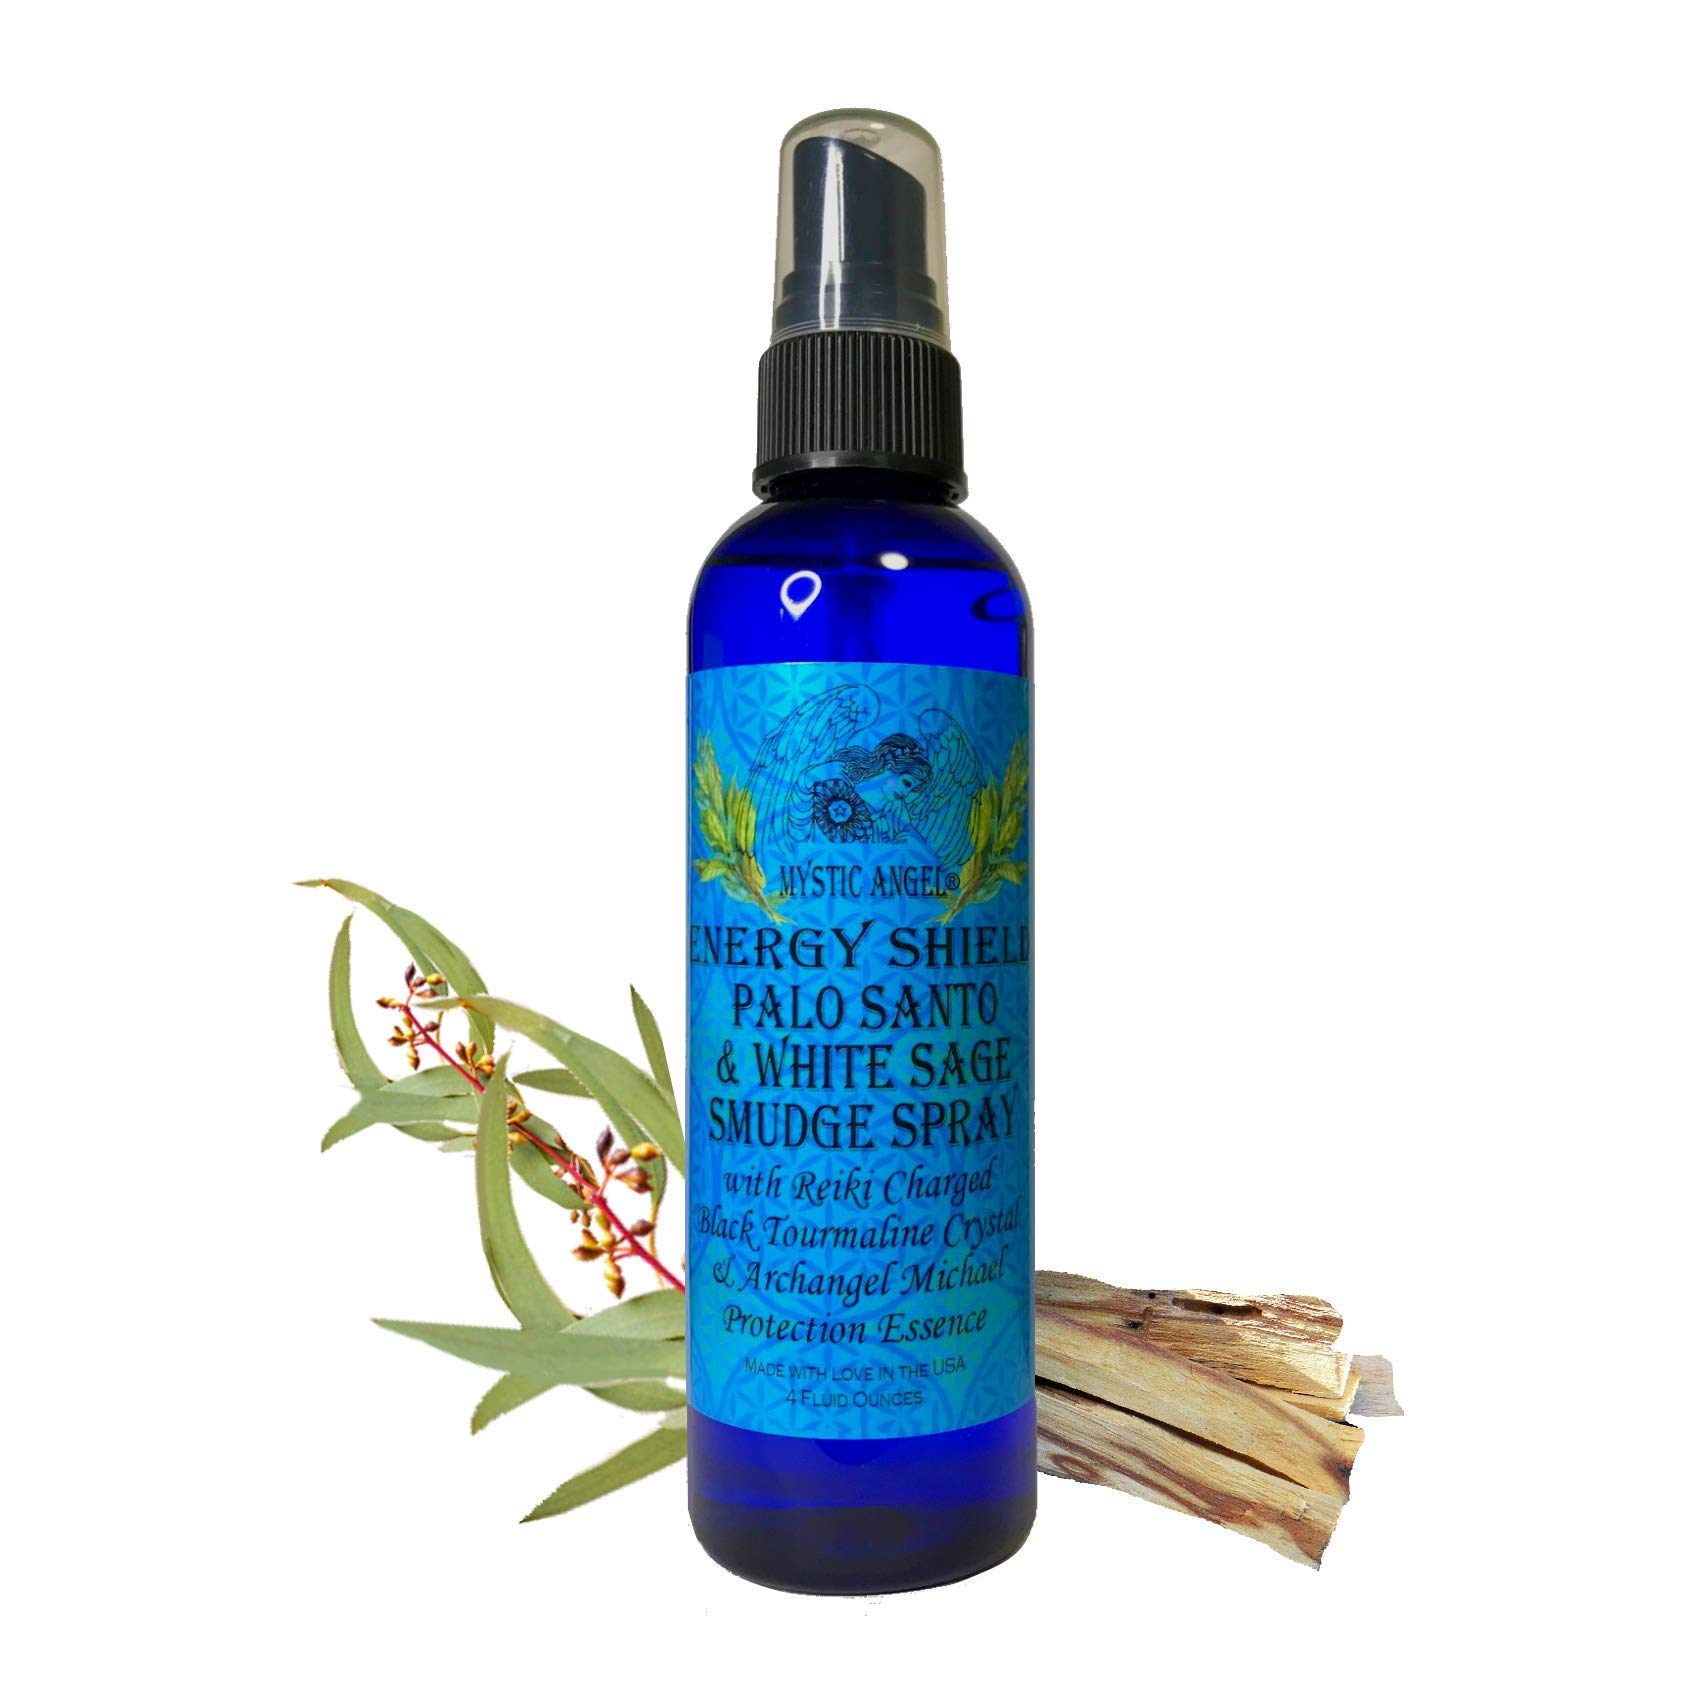 Energy Shield Palo Santo & White Sage Smudge Spray (4 oz.) with with Reiki Charged Black Tourmaline Crystal & Archangel Michael Protecion Essence, Shields Against EMFs, Psychic Attacks, Night Terrors by Mystic Angel